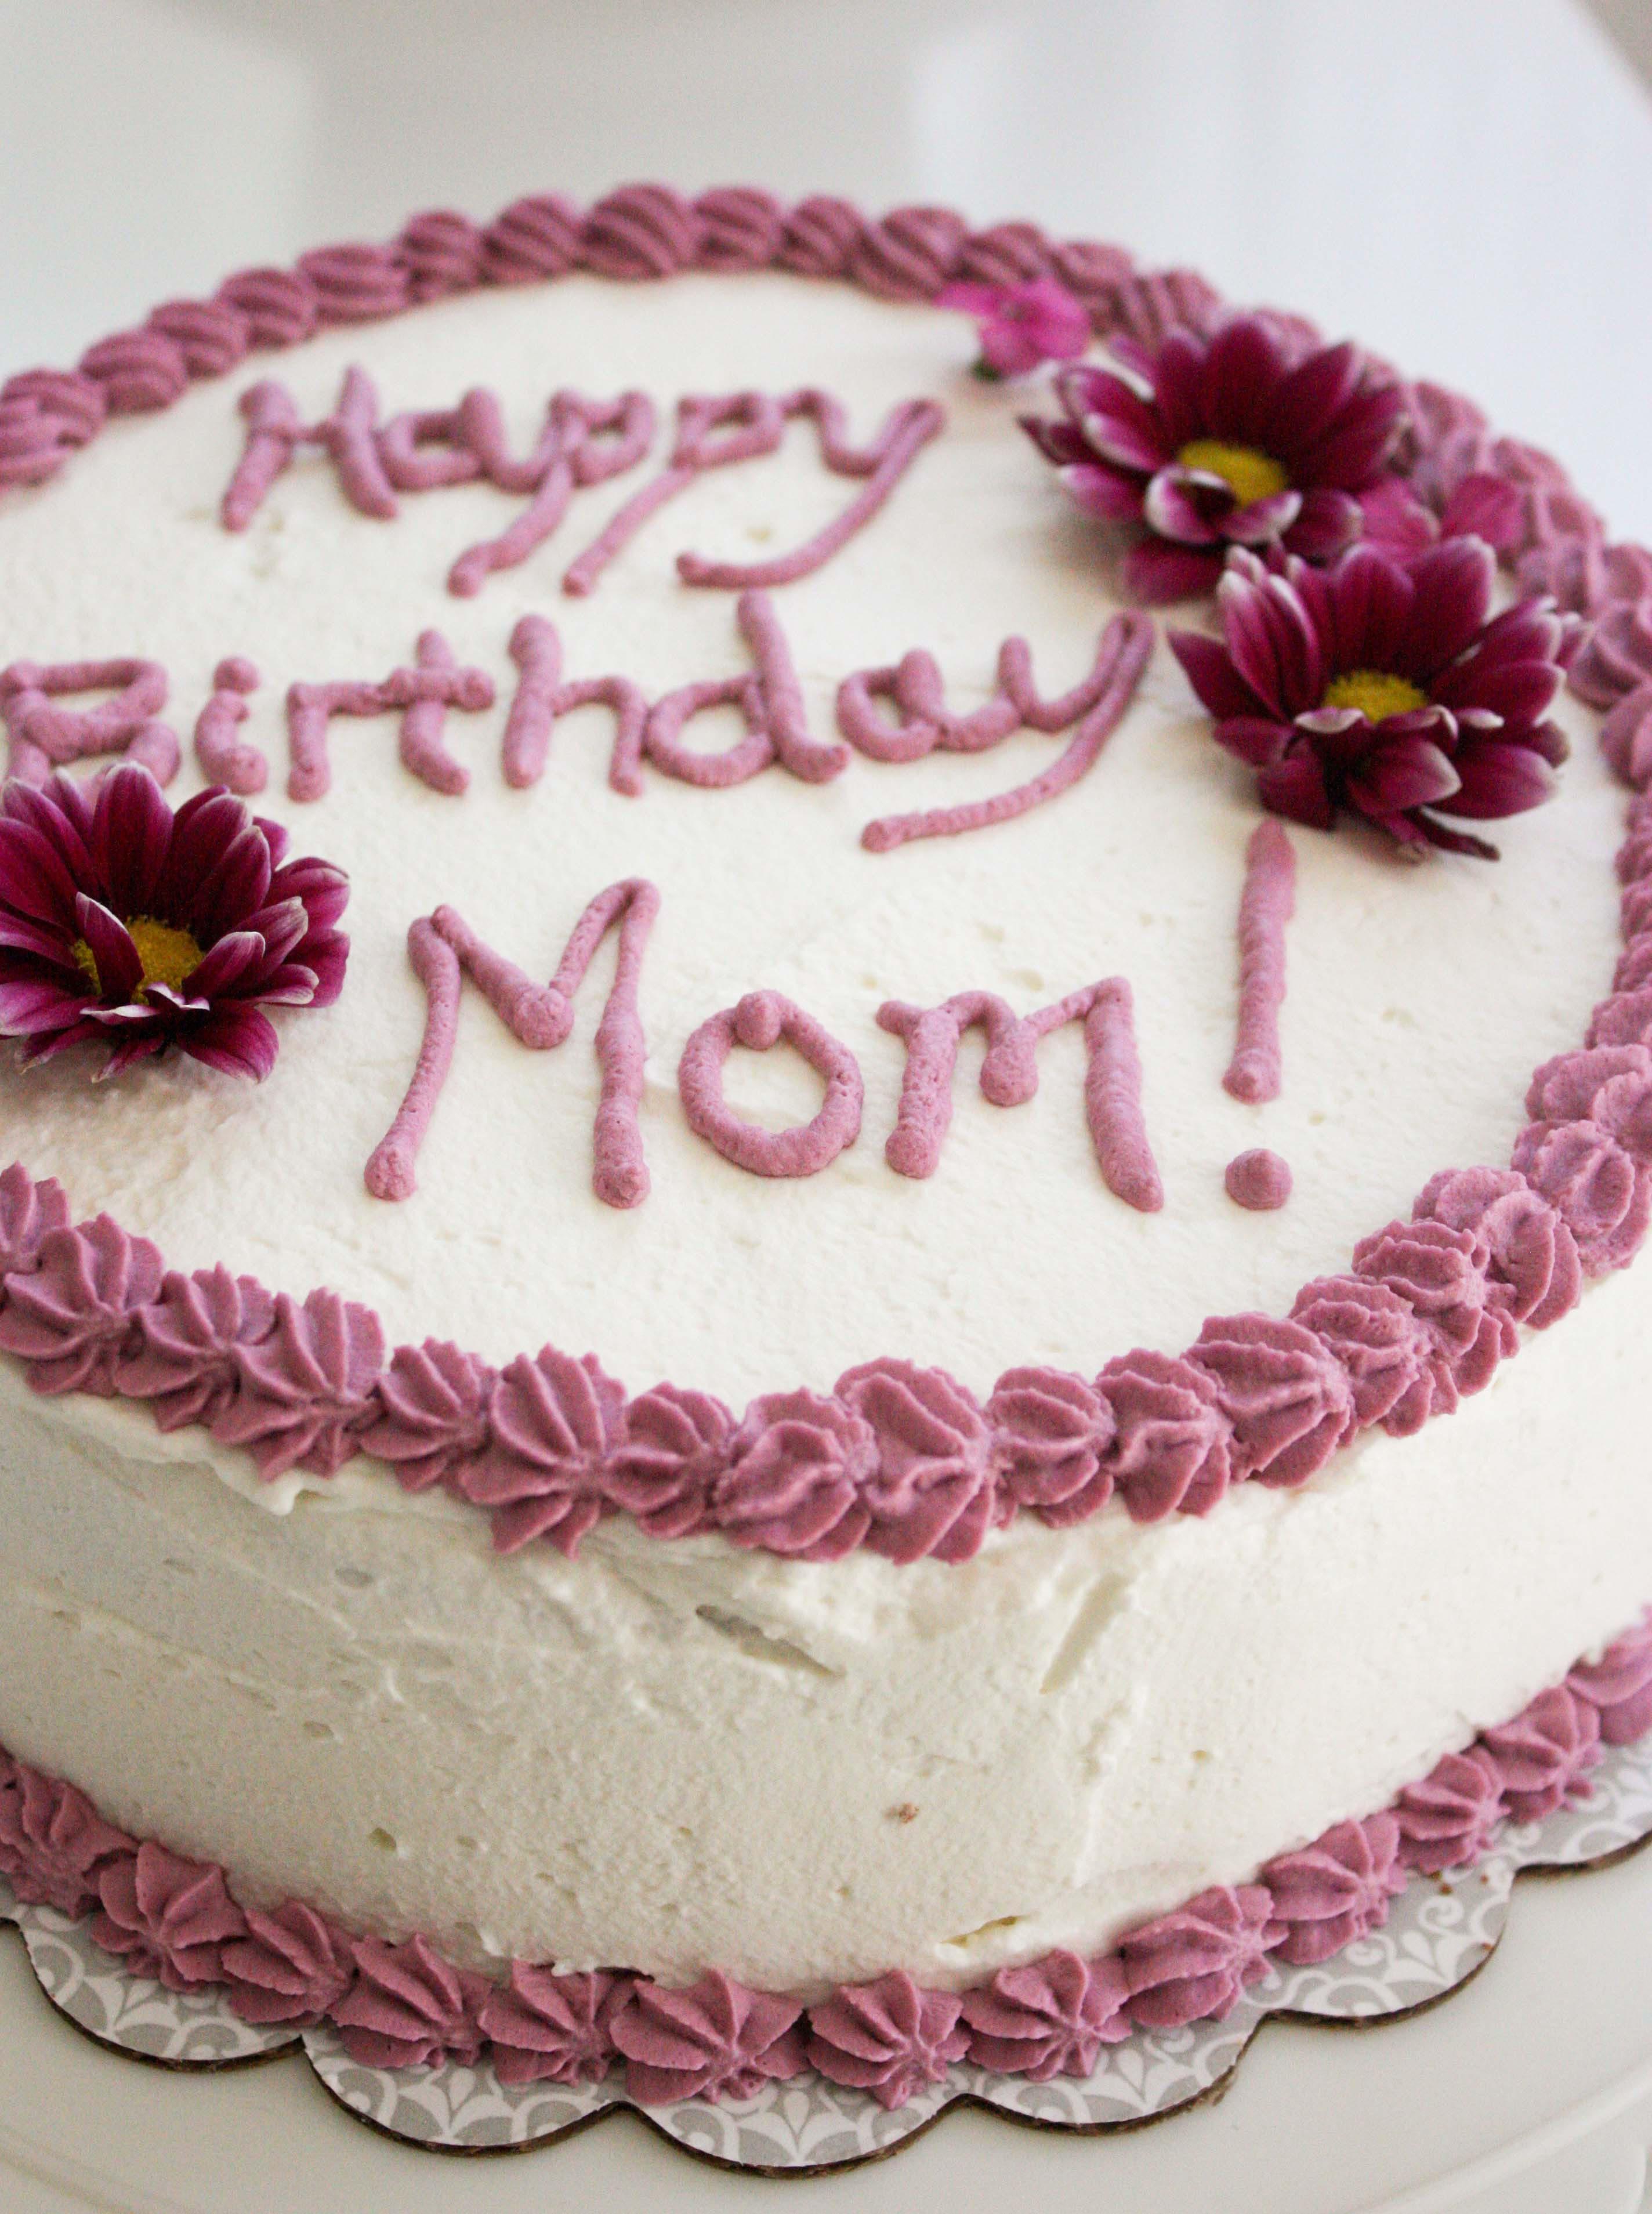 Best ideas about Birthday Cake For Mother . Save or Pin Banana Birthday Cake for My Mom – Foodologie Now.